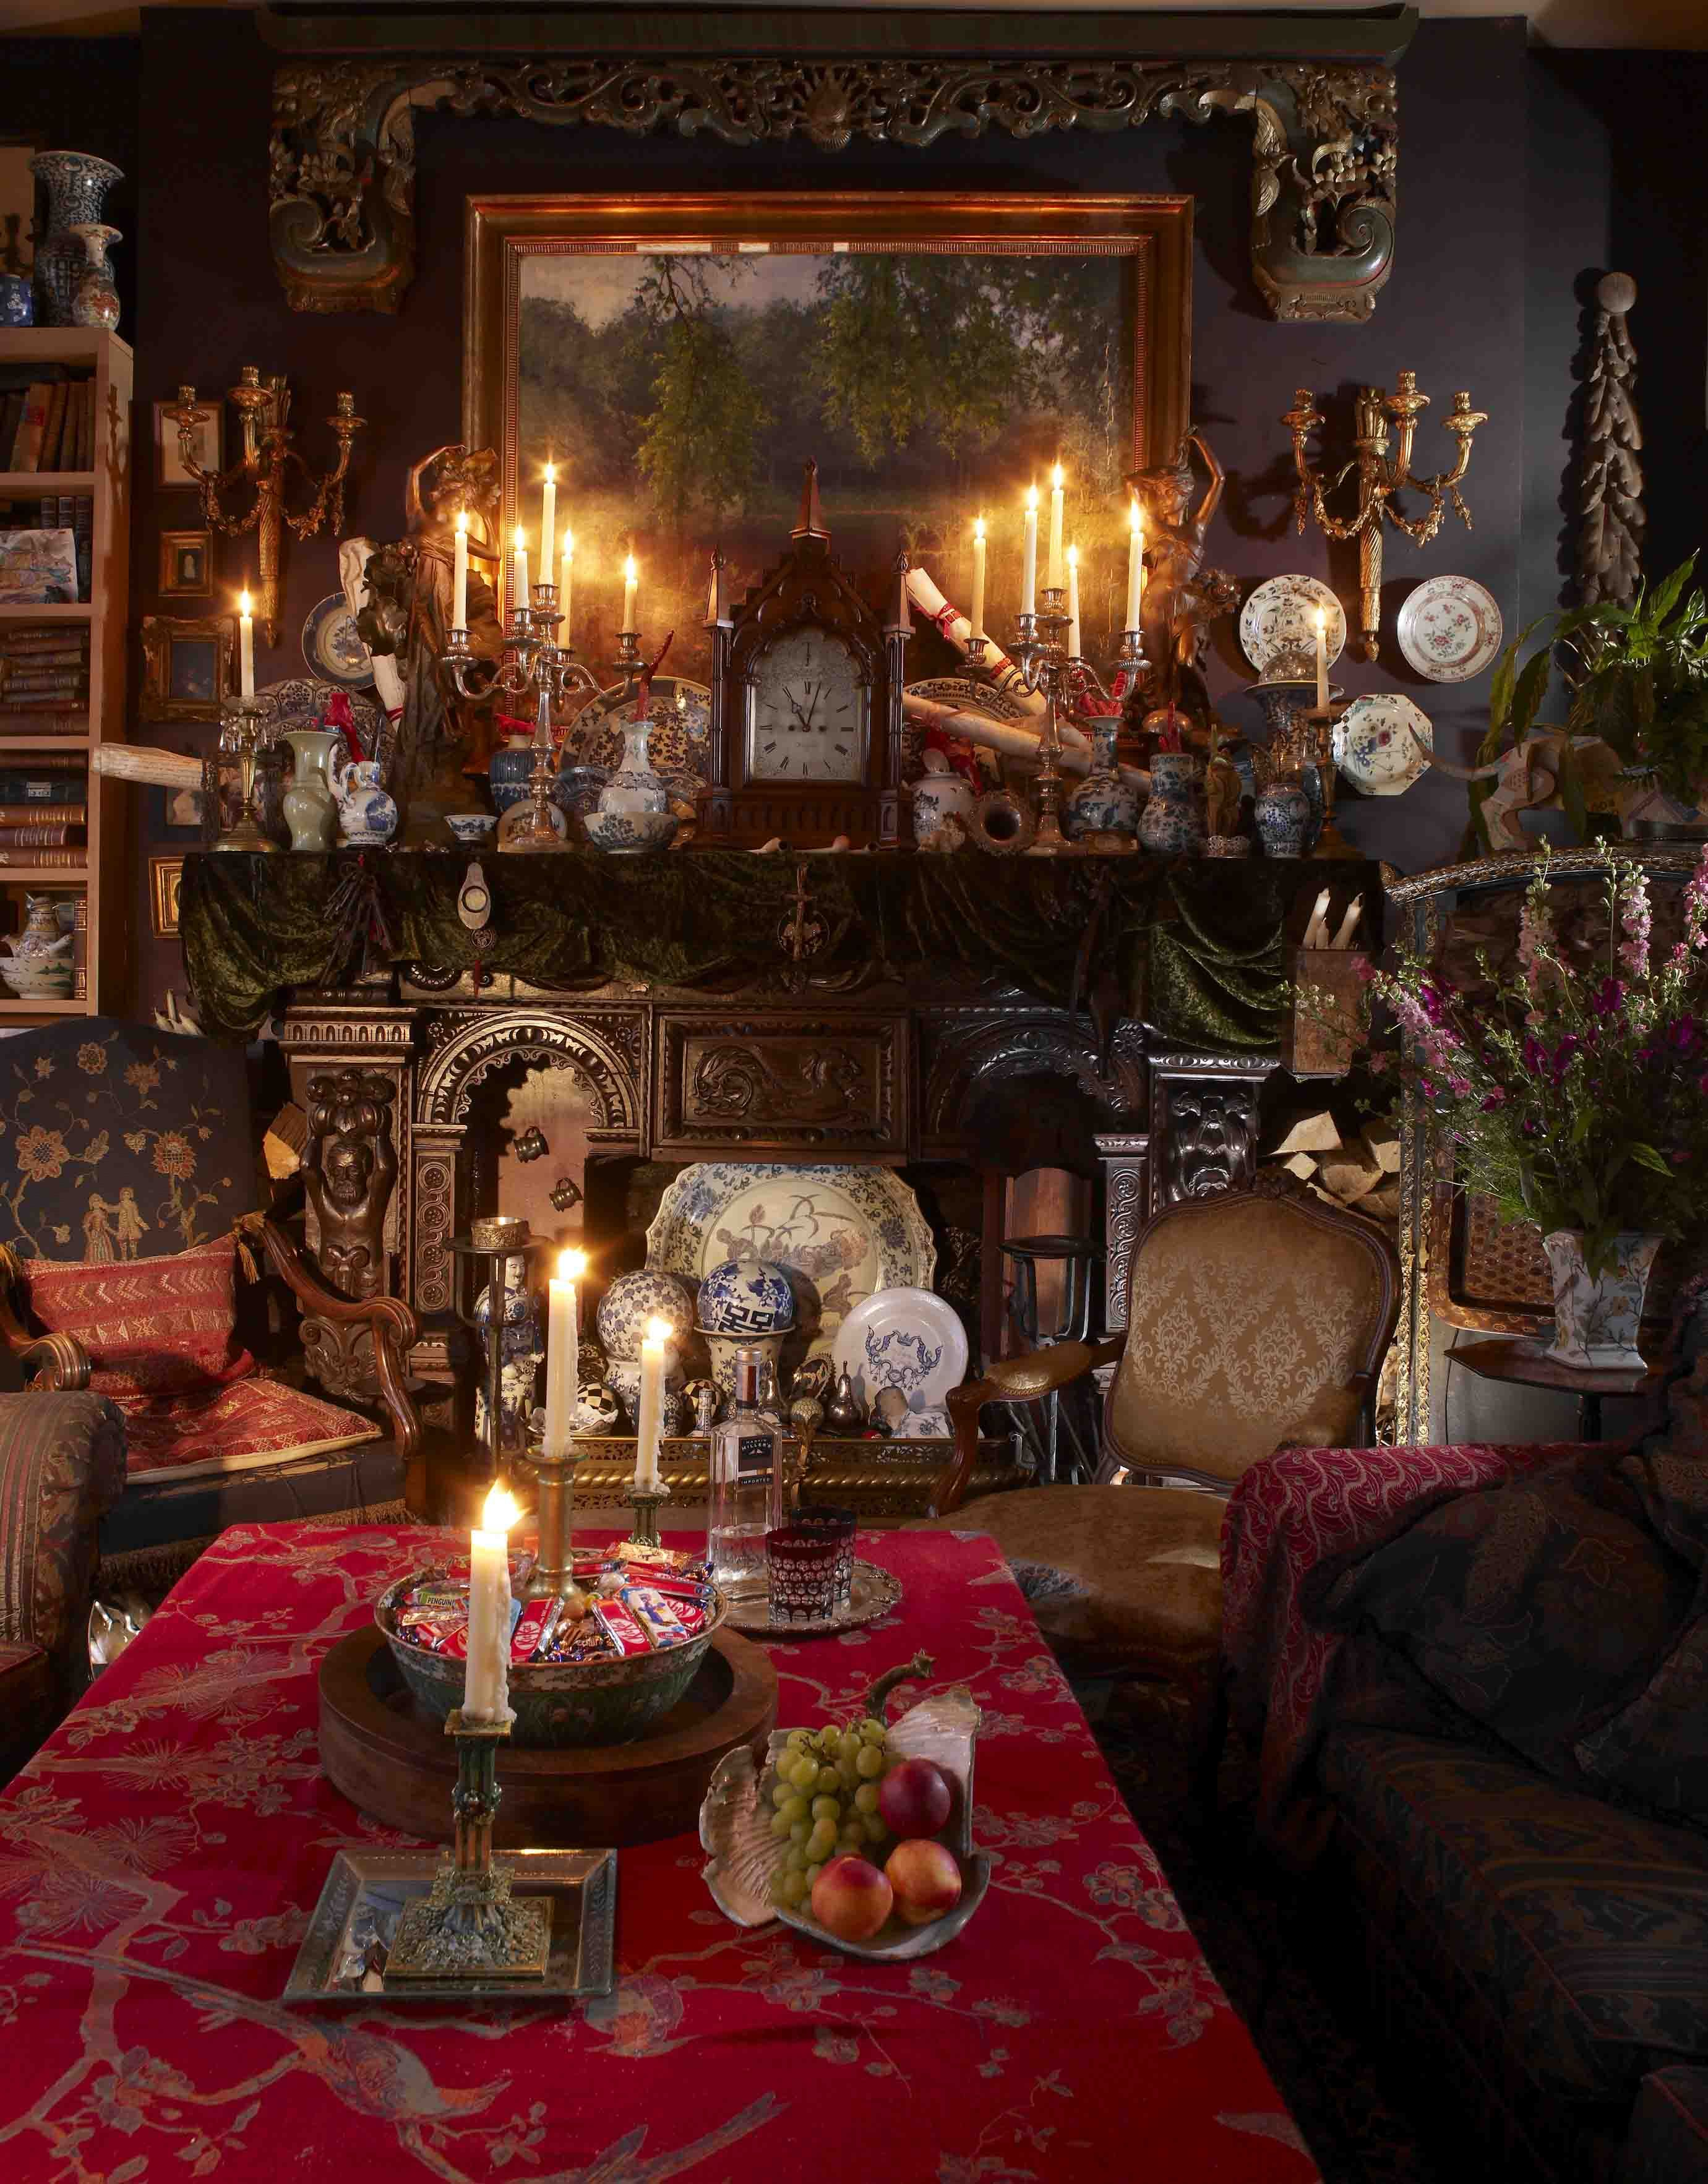 Mysterious Gothic Home Decor and Victorian Gothic Decorations Ideas.Reference about dark and weird accessories for kitchen bedroom \u0026 other room interior. & The drawing room | Decadent Sumptuous Gothic-y | Pinterest ...